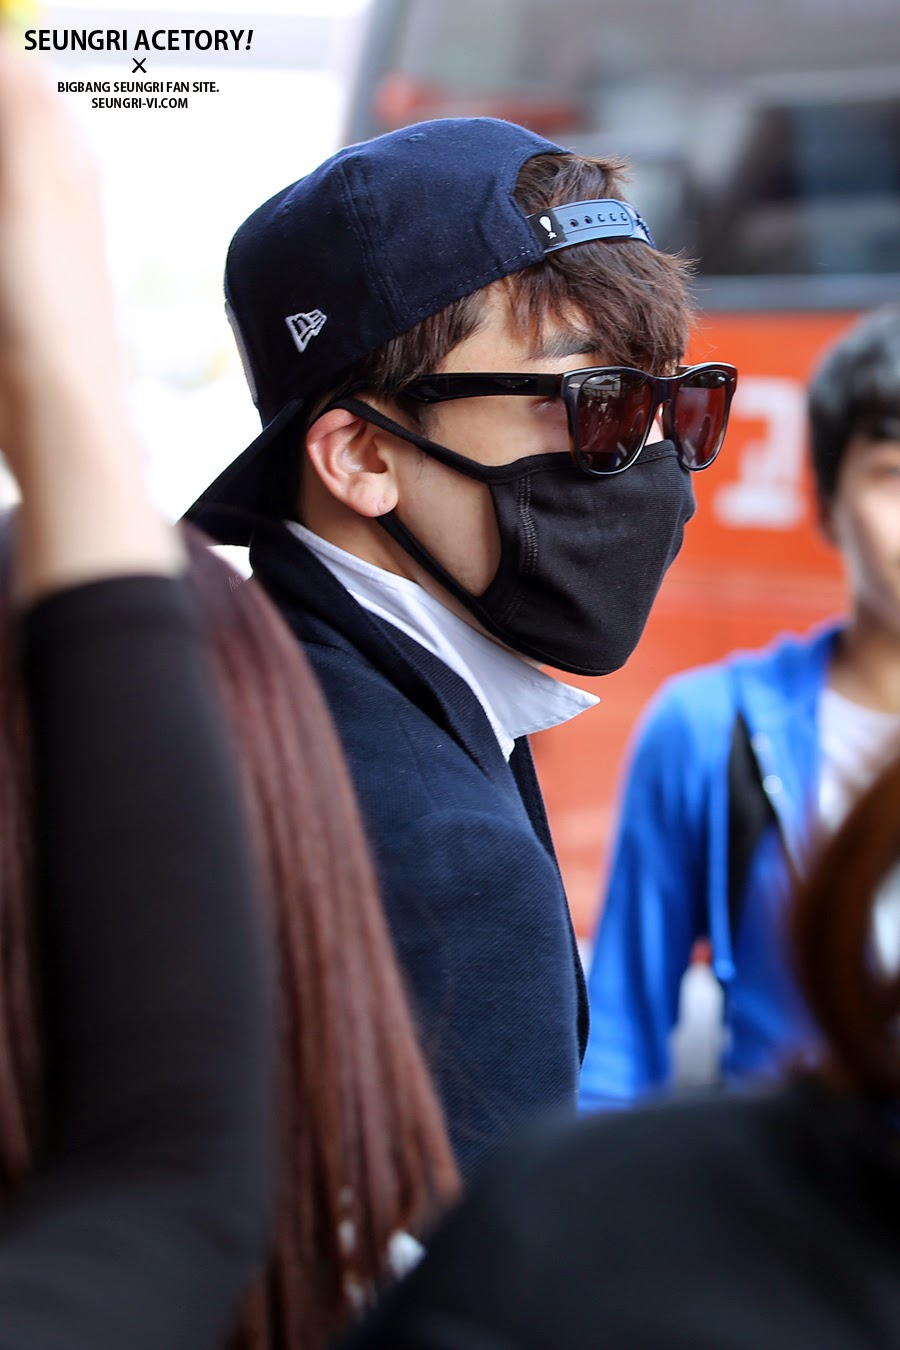 Seung Ri - Gimpo Airport - 14apr2014 - Fan - Acetory - 2.jpg